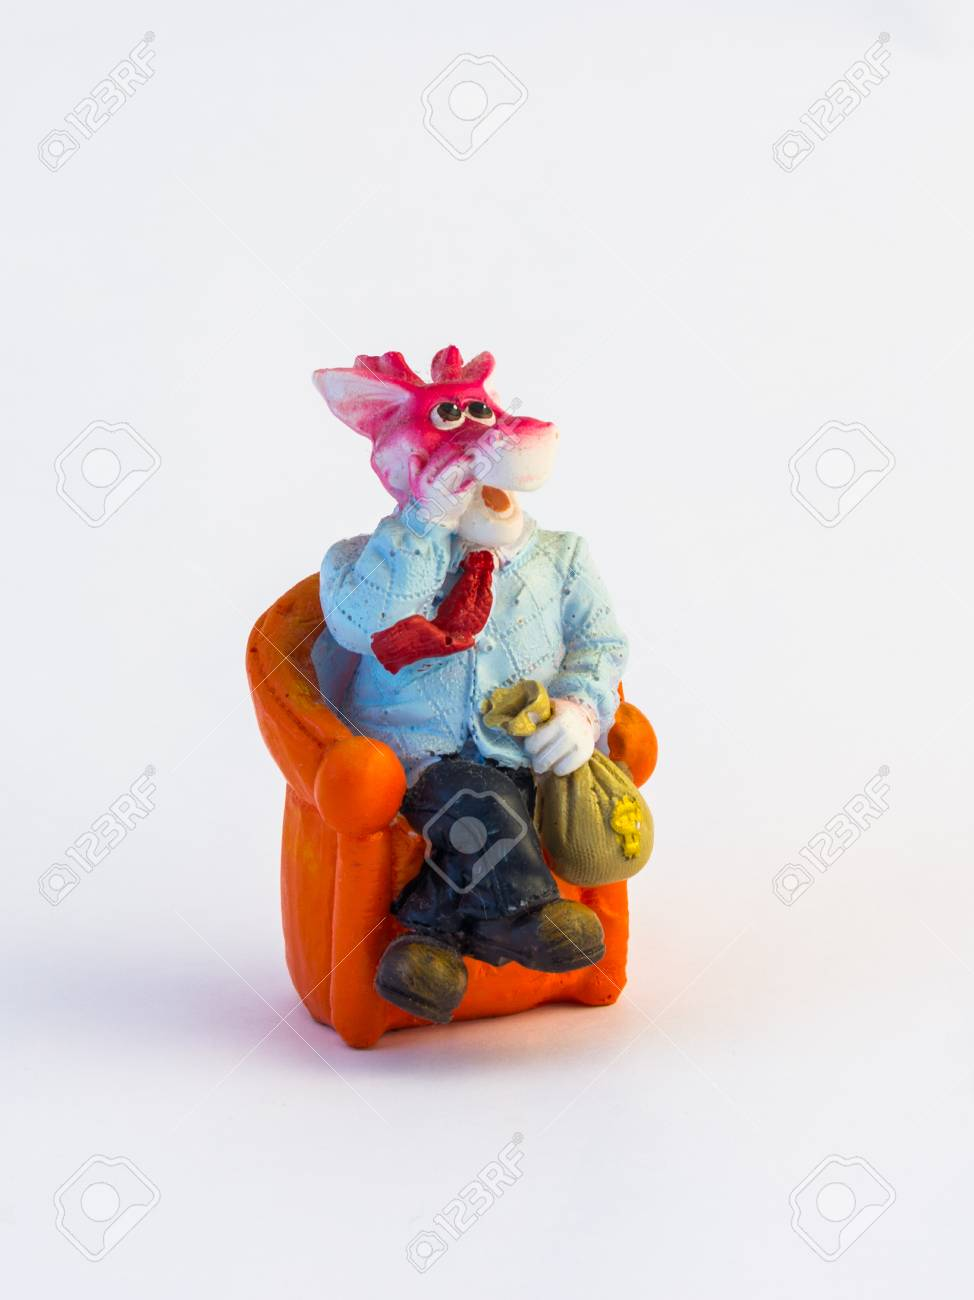 Dragon Chair Figurine Of A Dragon In A Suit Sitting On An Orange Chair With